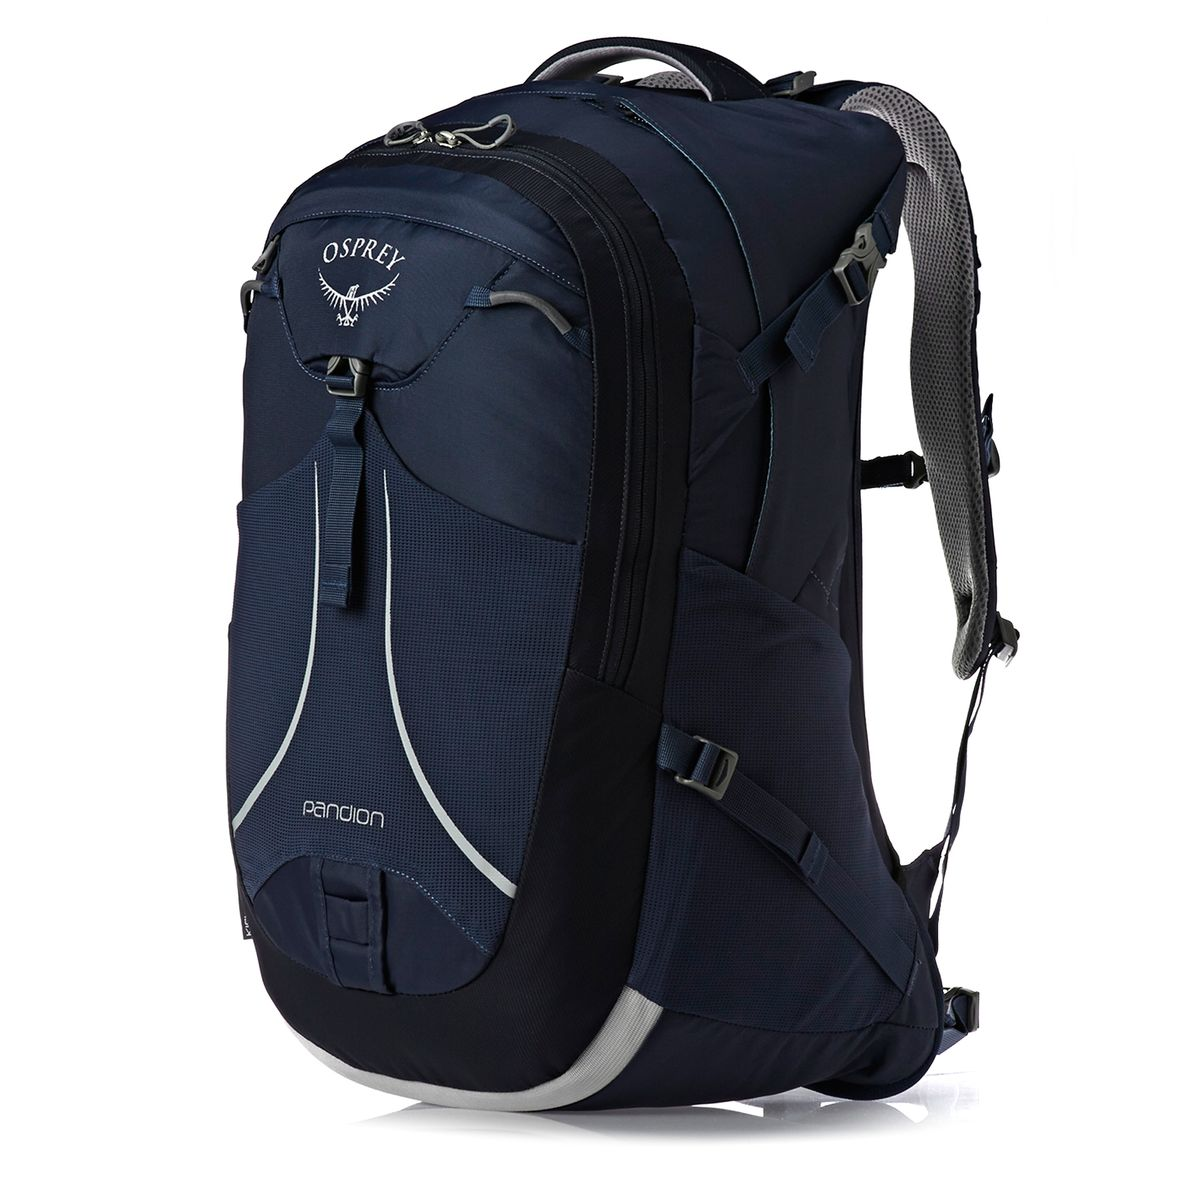 osprey-backpacks-osprey-new-2017-pandion-28l-backpack-navy-blue